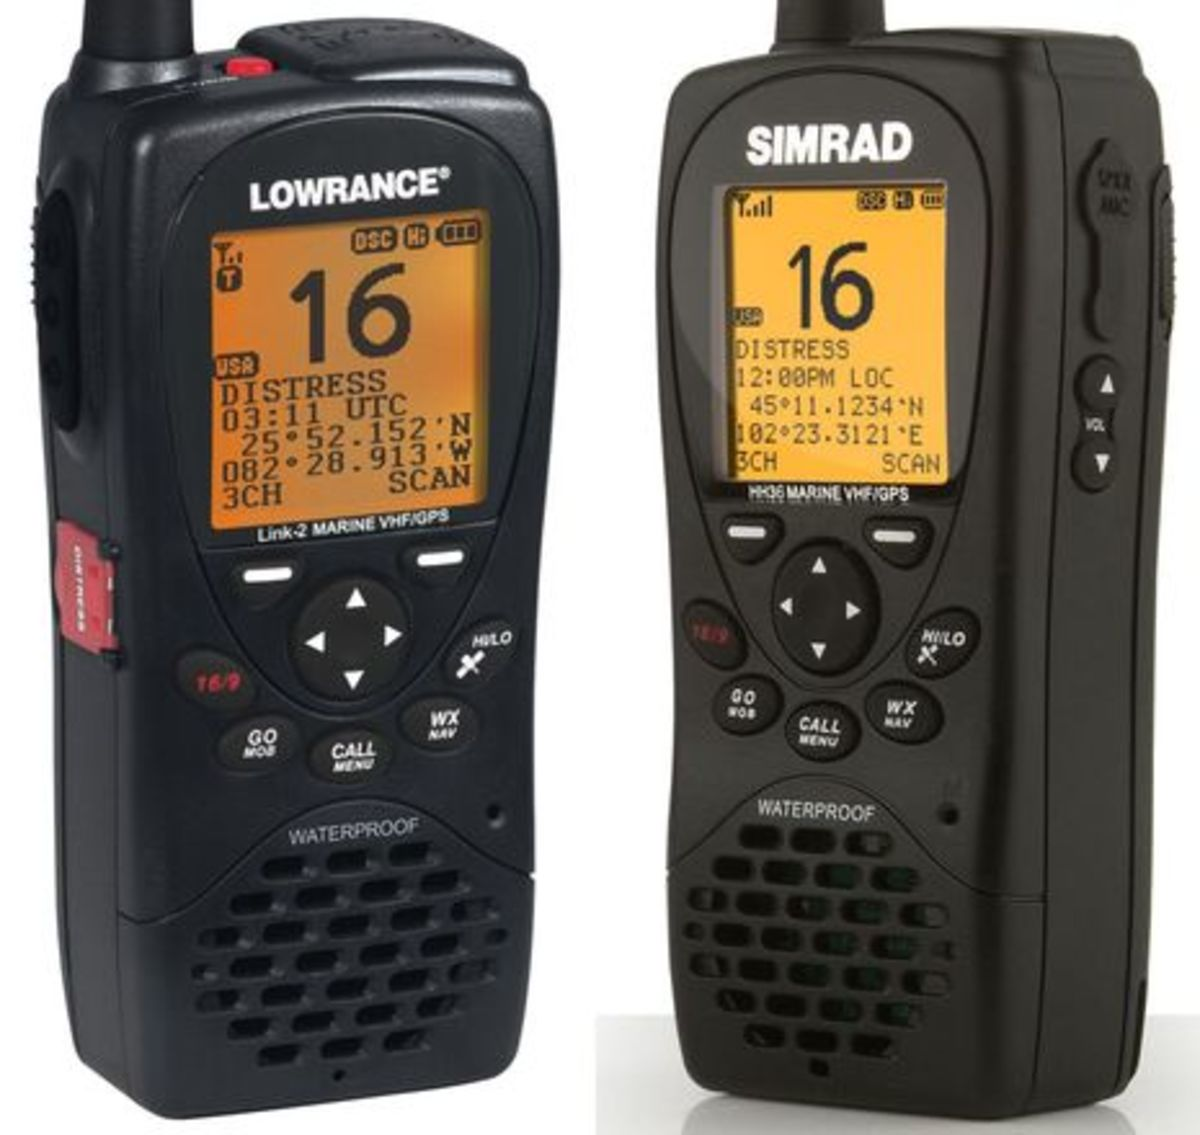 Lowrance_Link-2_and_Simrad_HH36_GPS-VHF_handhelds_cPanbo.jpg